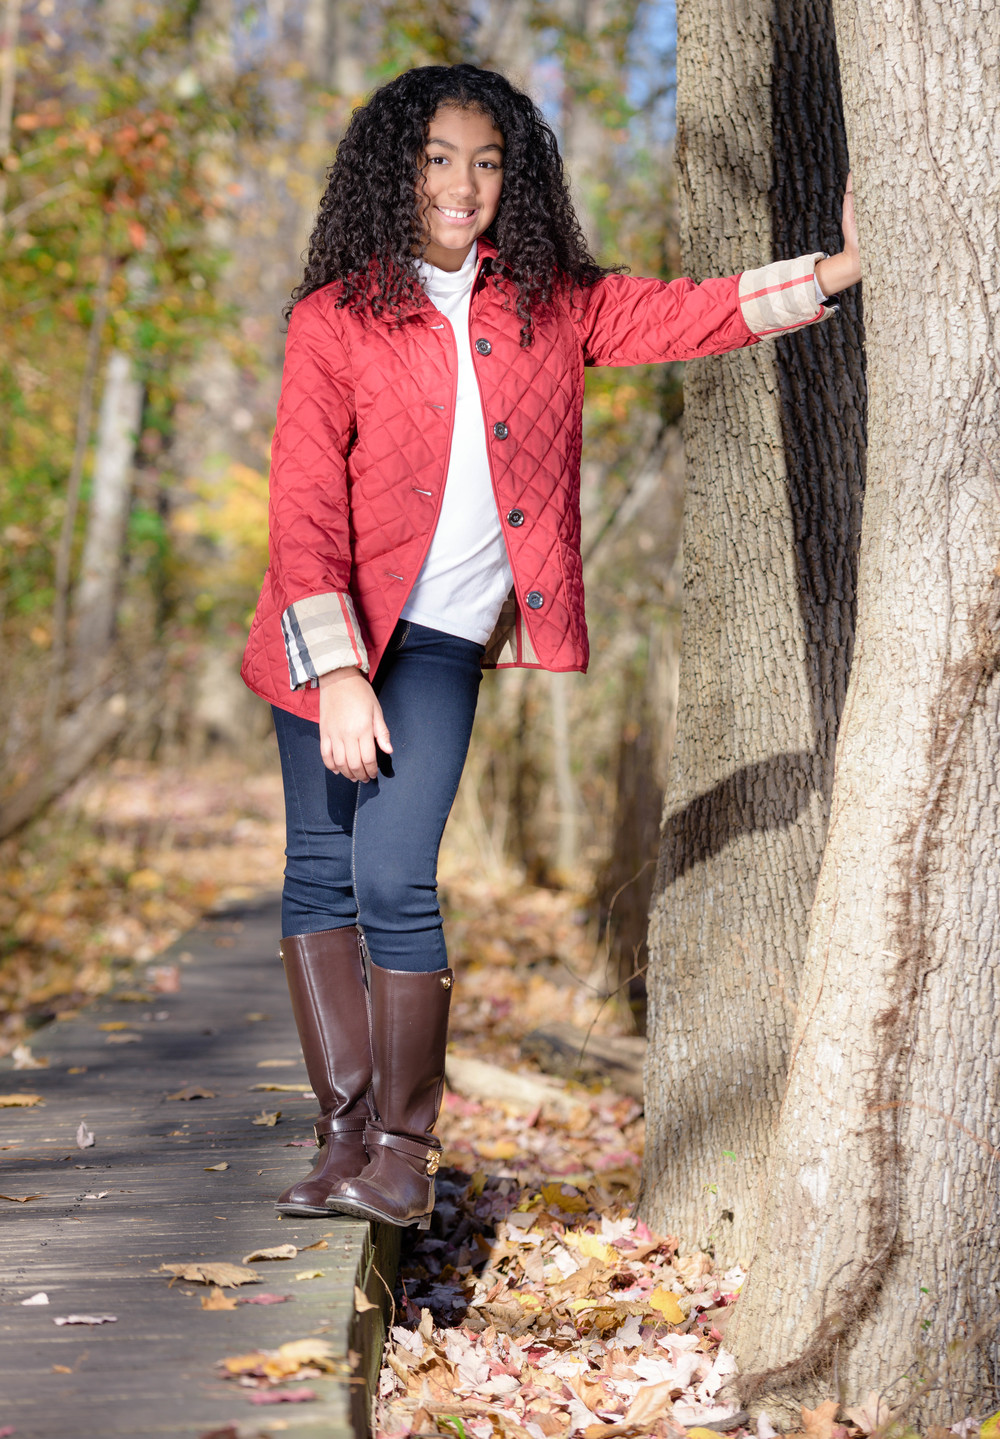 Fall session childrens portrait photography delensmode allendale nj